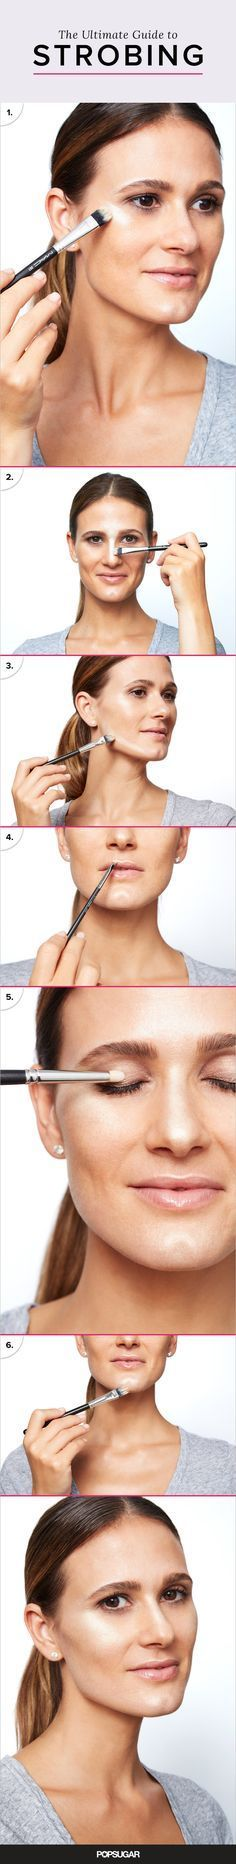 Highlighter Hacks | Strobing Makeup Tutorial | POPSUGAR Beauty#photo-38029846#photo-38029846#photo-interstitial-1